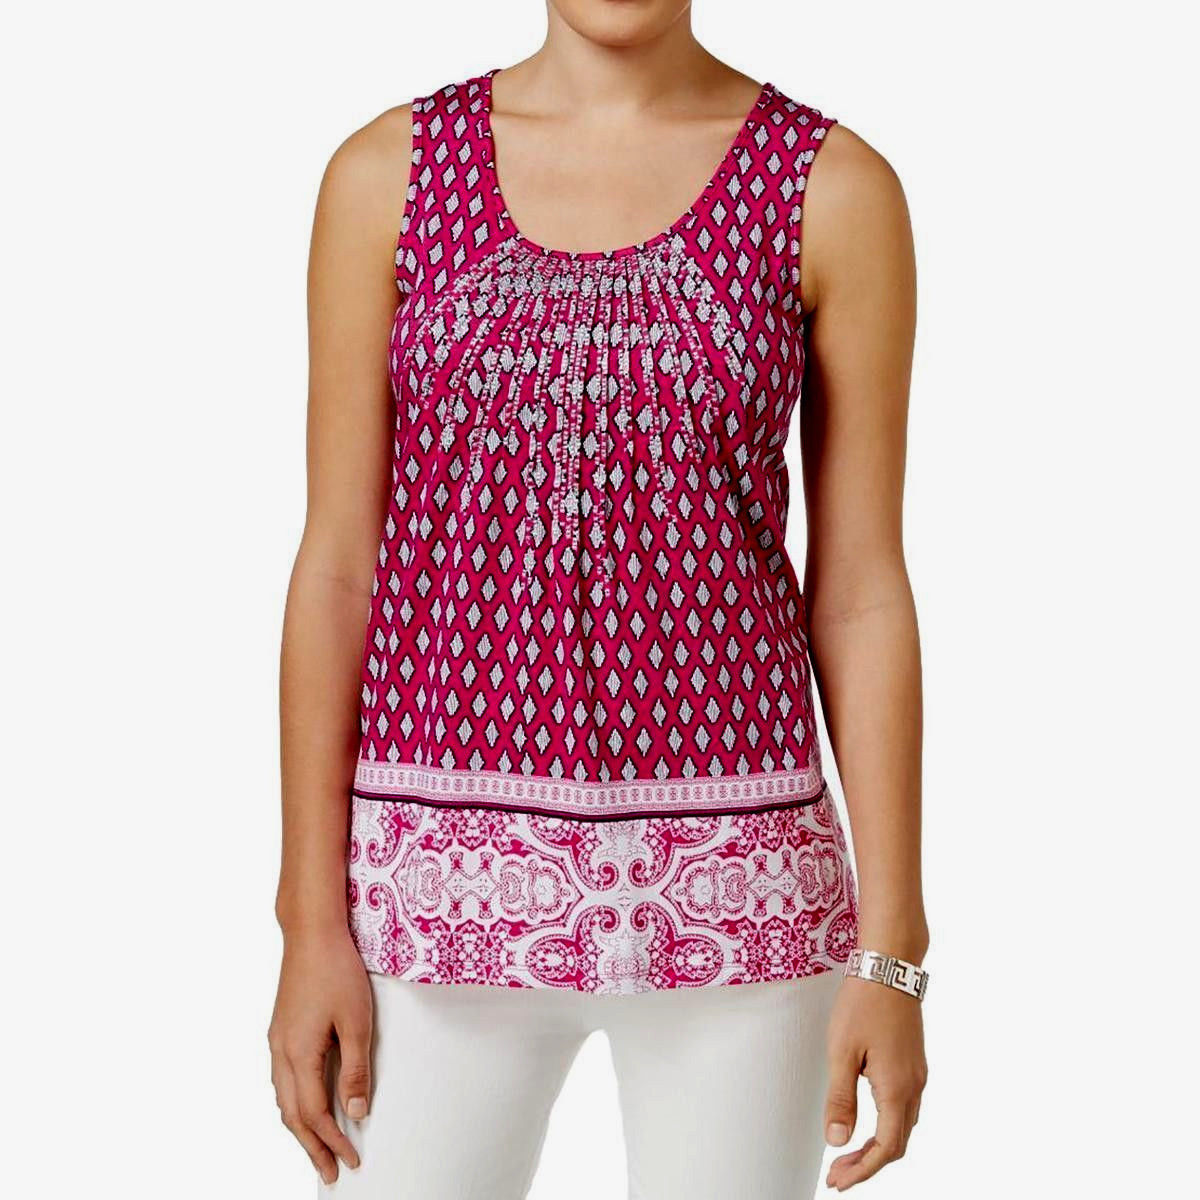 Primary image for Charter Club Womens Embroidered Printed Tank Top in Royal Fuchsia, Large